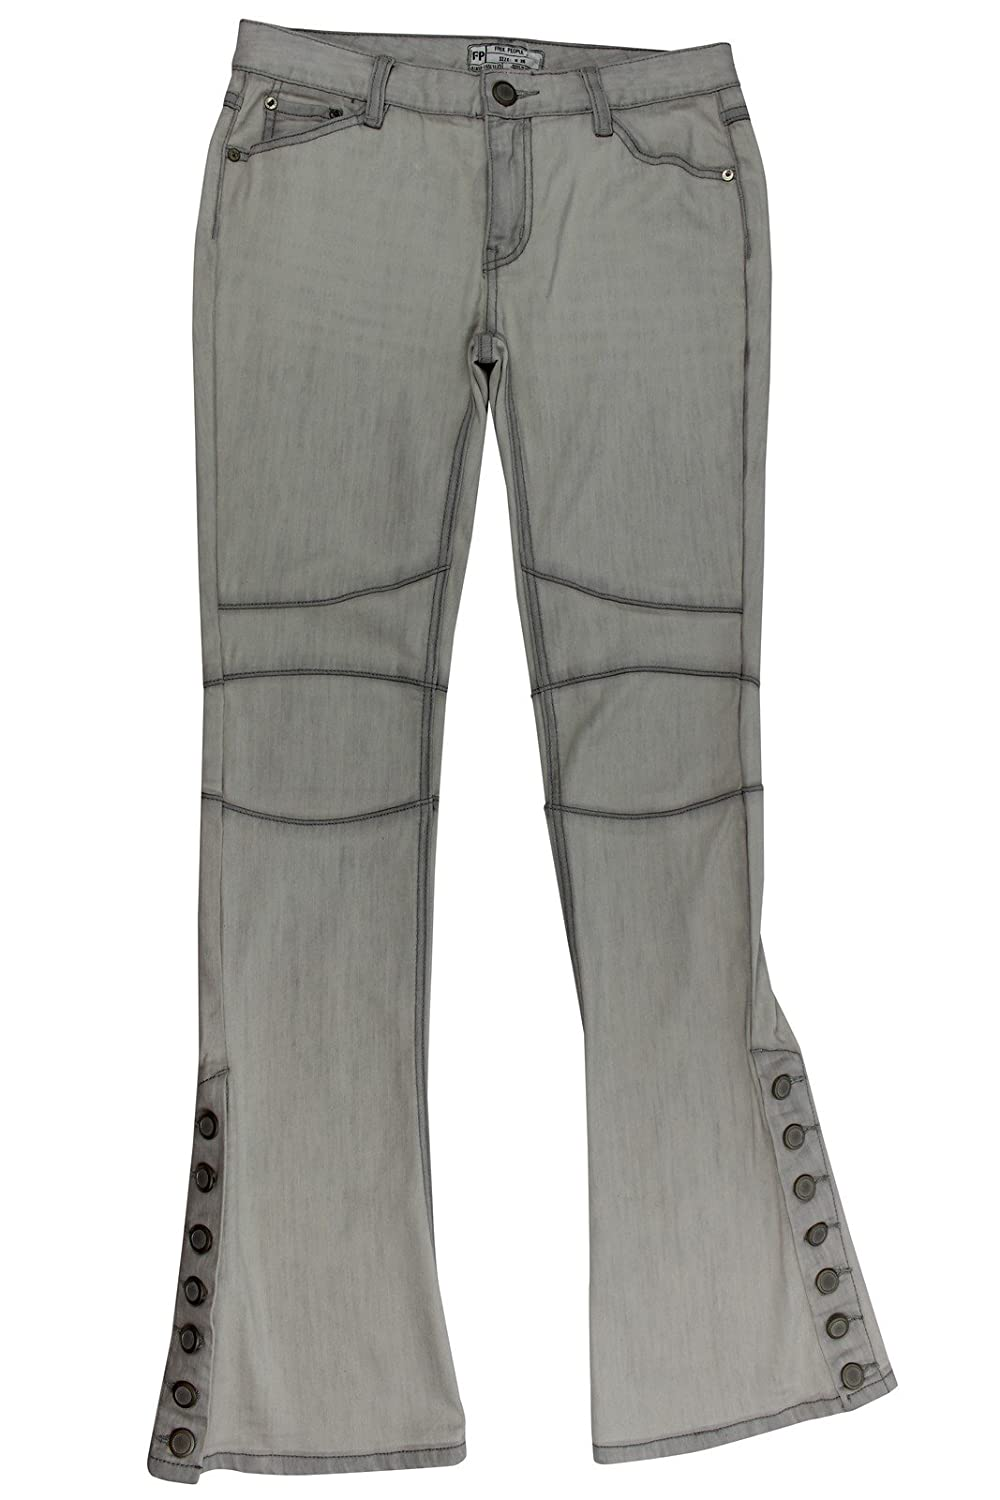 Free People Women's Grey Seamed Flared Jeans